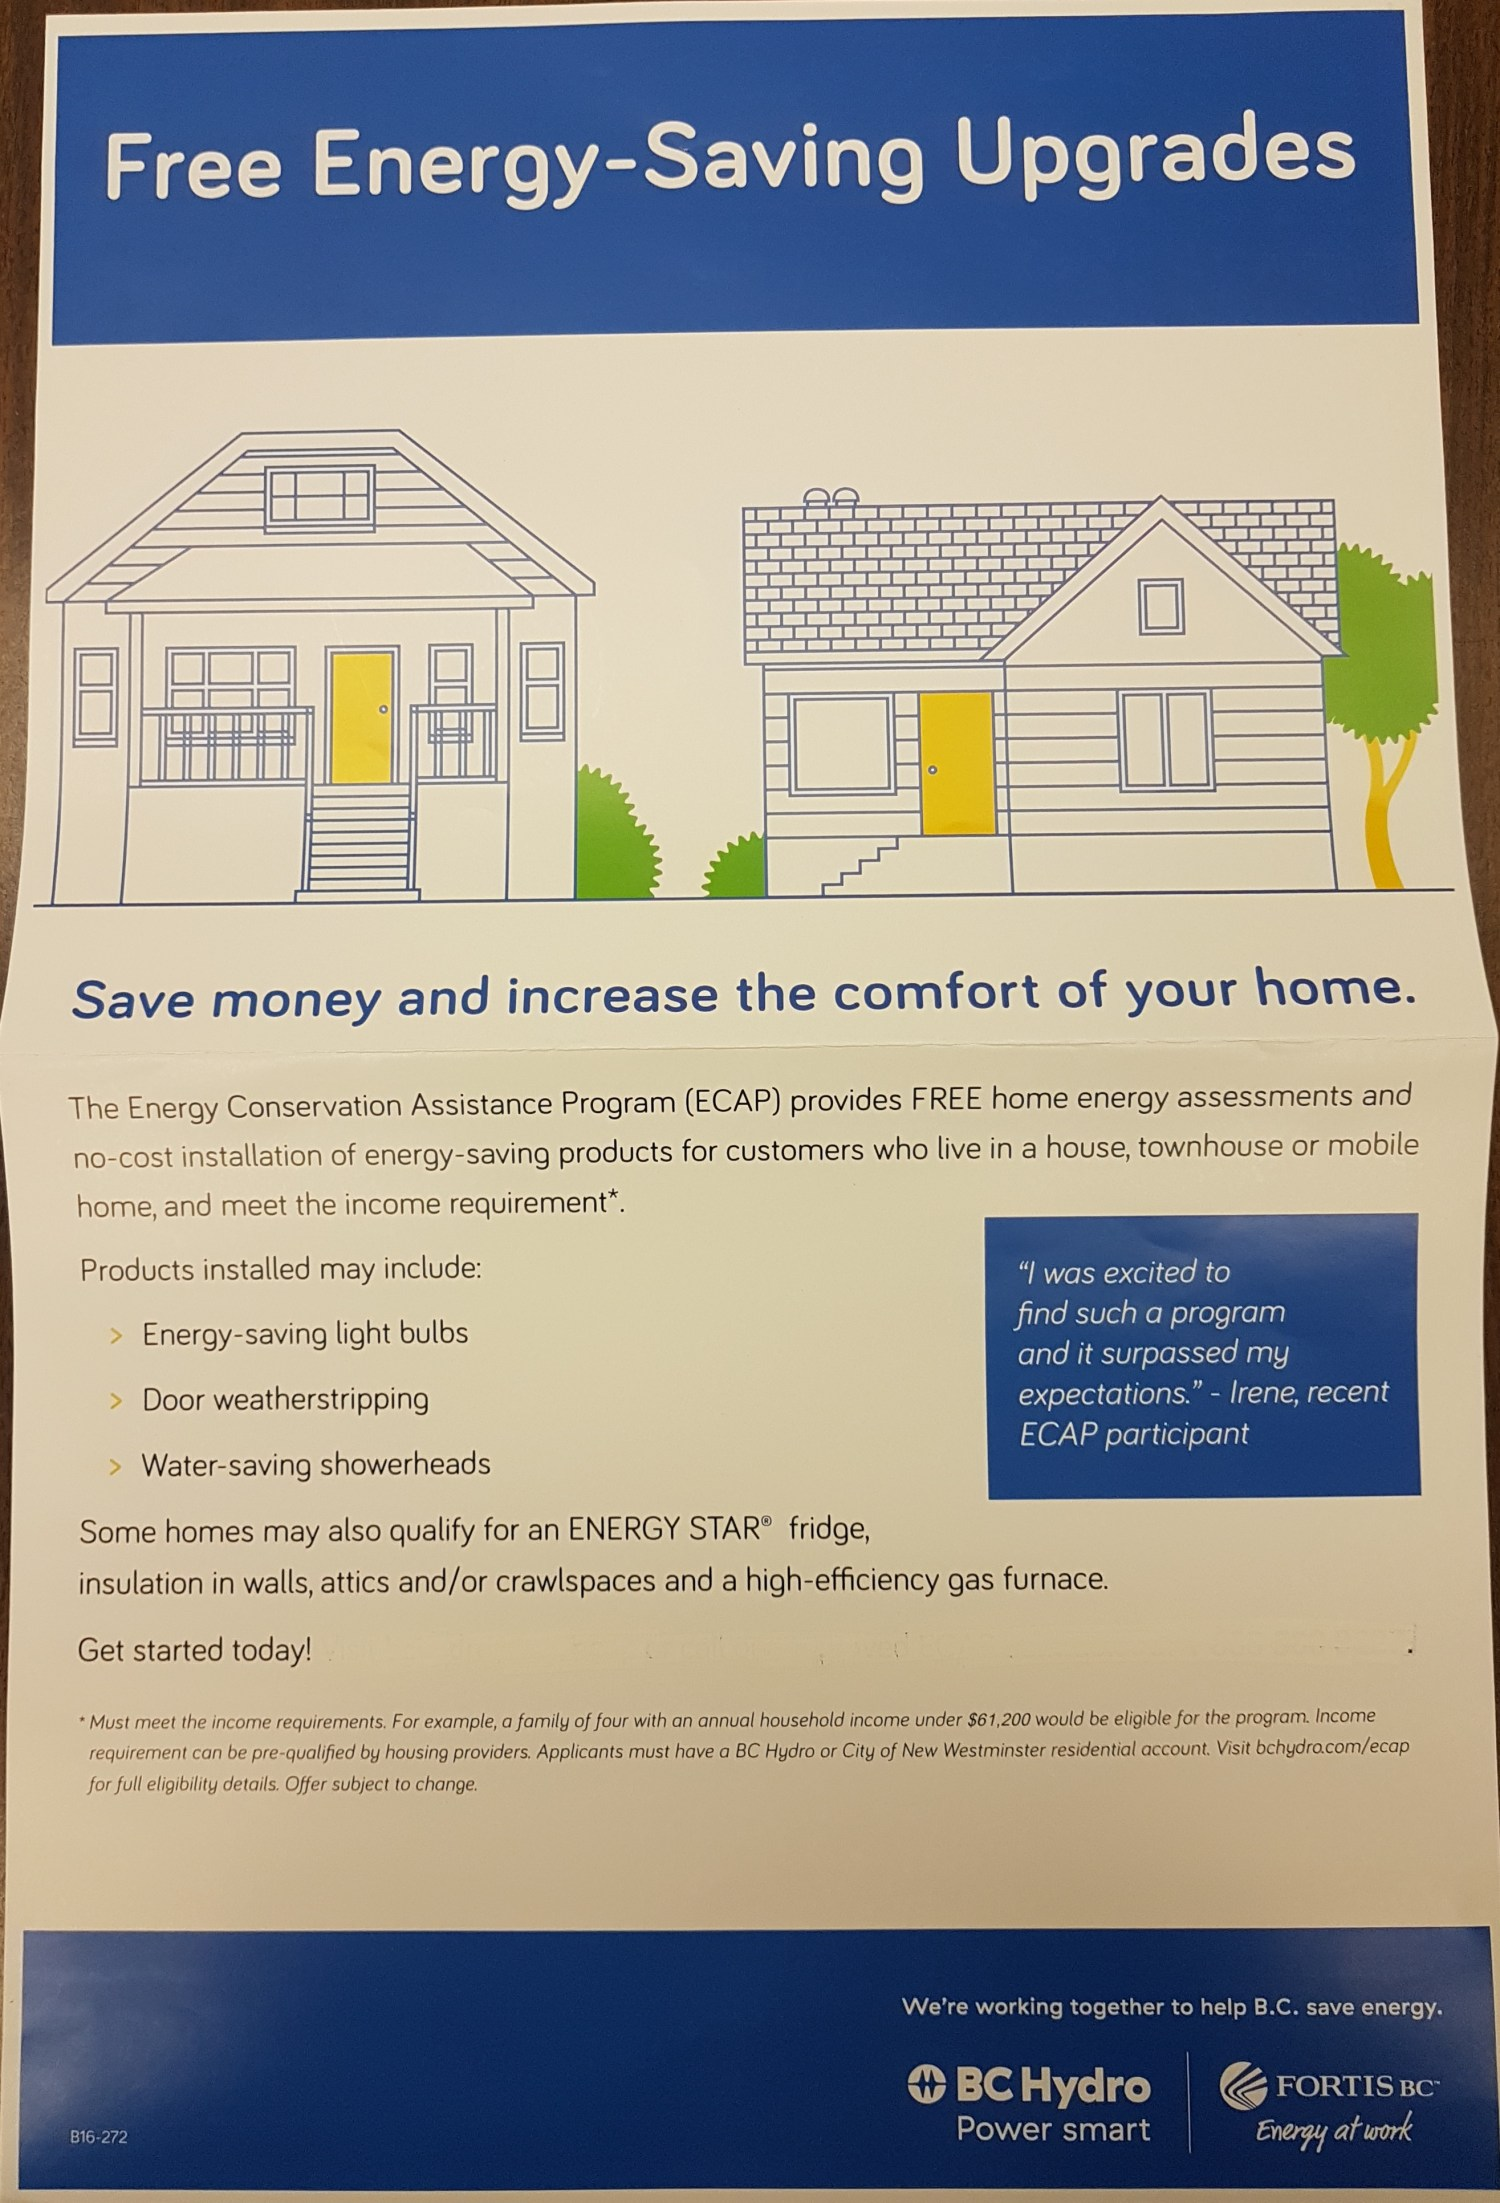 Call us at MCSS to assist your home energy upgrade - Mission